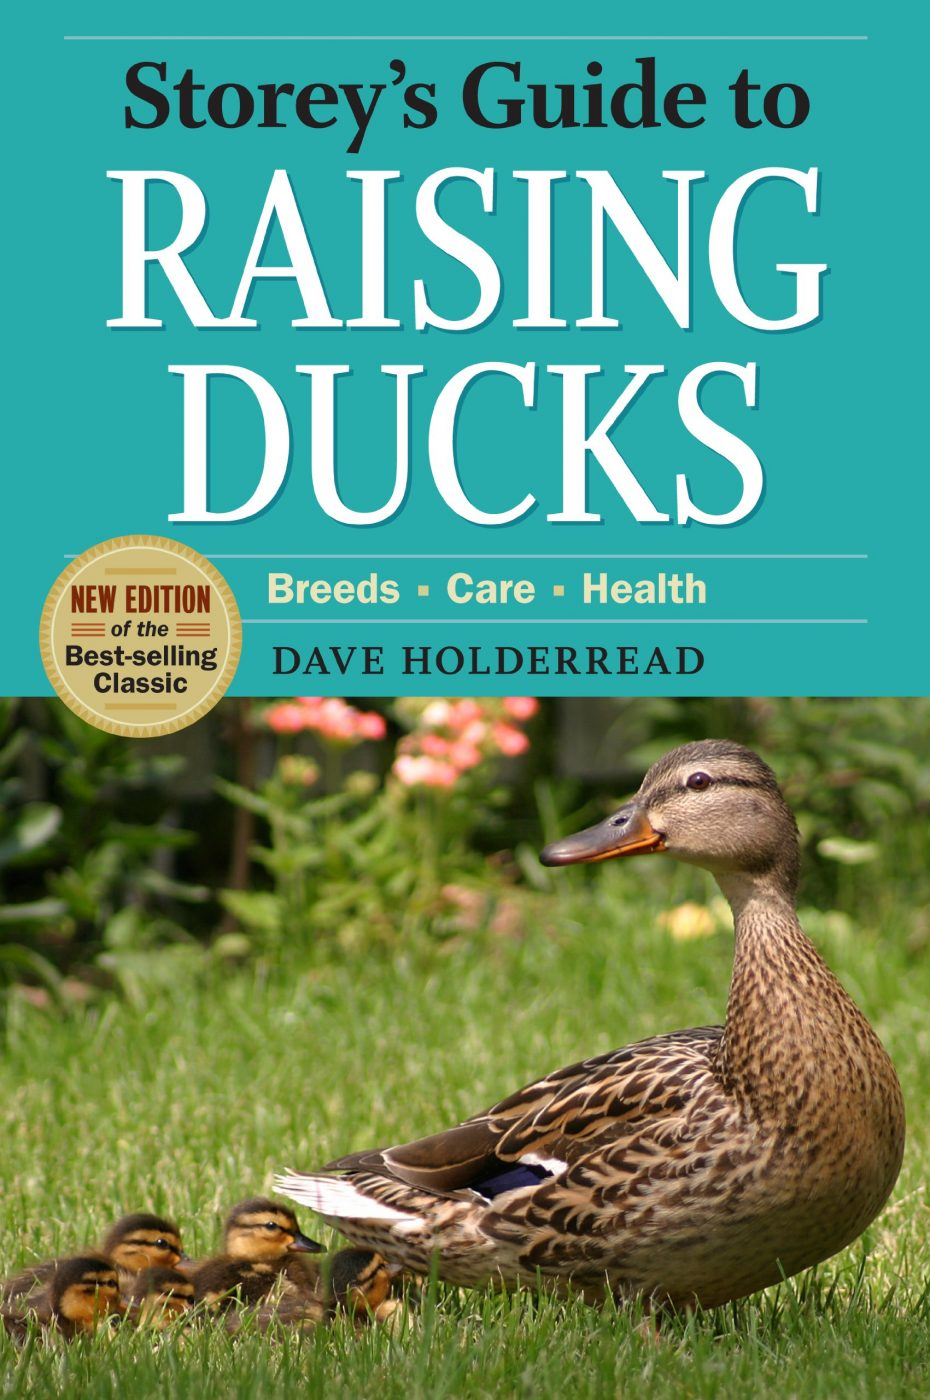 Storey's Guide To Raising Ducks By Dave Holderread